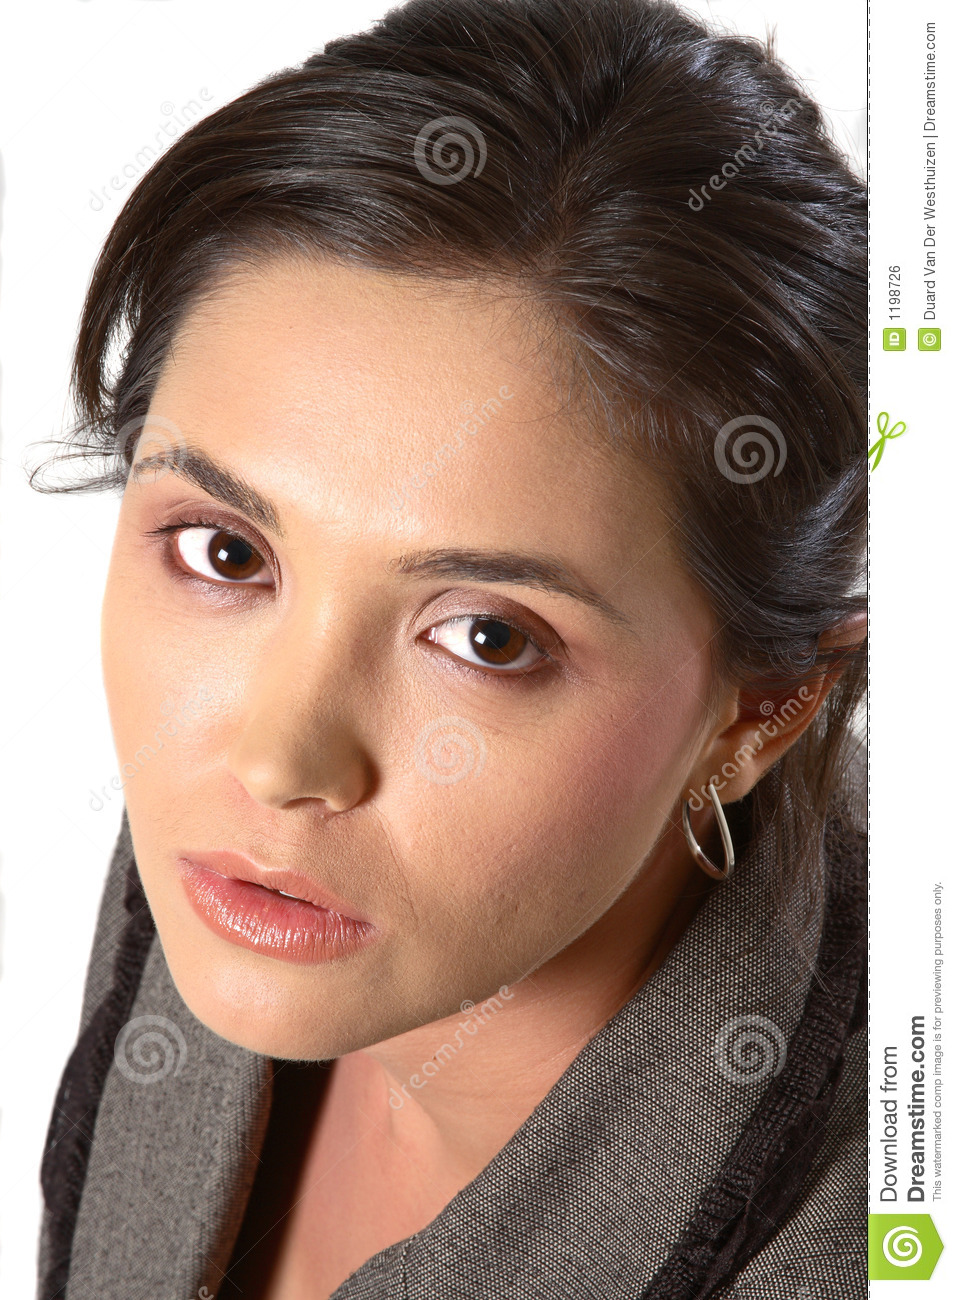 Royalty Free Stock Image Woman Looking Up Camera Image1198726 also Stock Photo Blond Girl With Surprised Gesture Face Portrait moreover Stock Image Chef Serving Food Image16073991 furthermore Stock Vector Happy Smiley Emoticon Face moreover Stock Photos I Don T Know Image2605923. on gesture objects